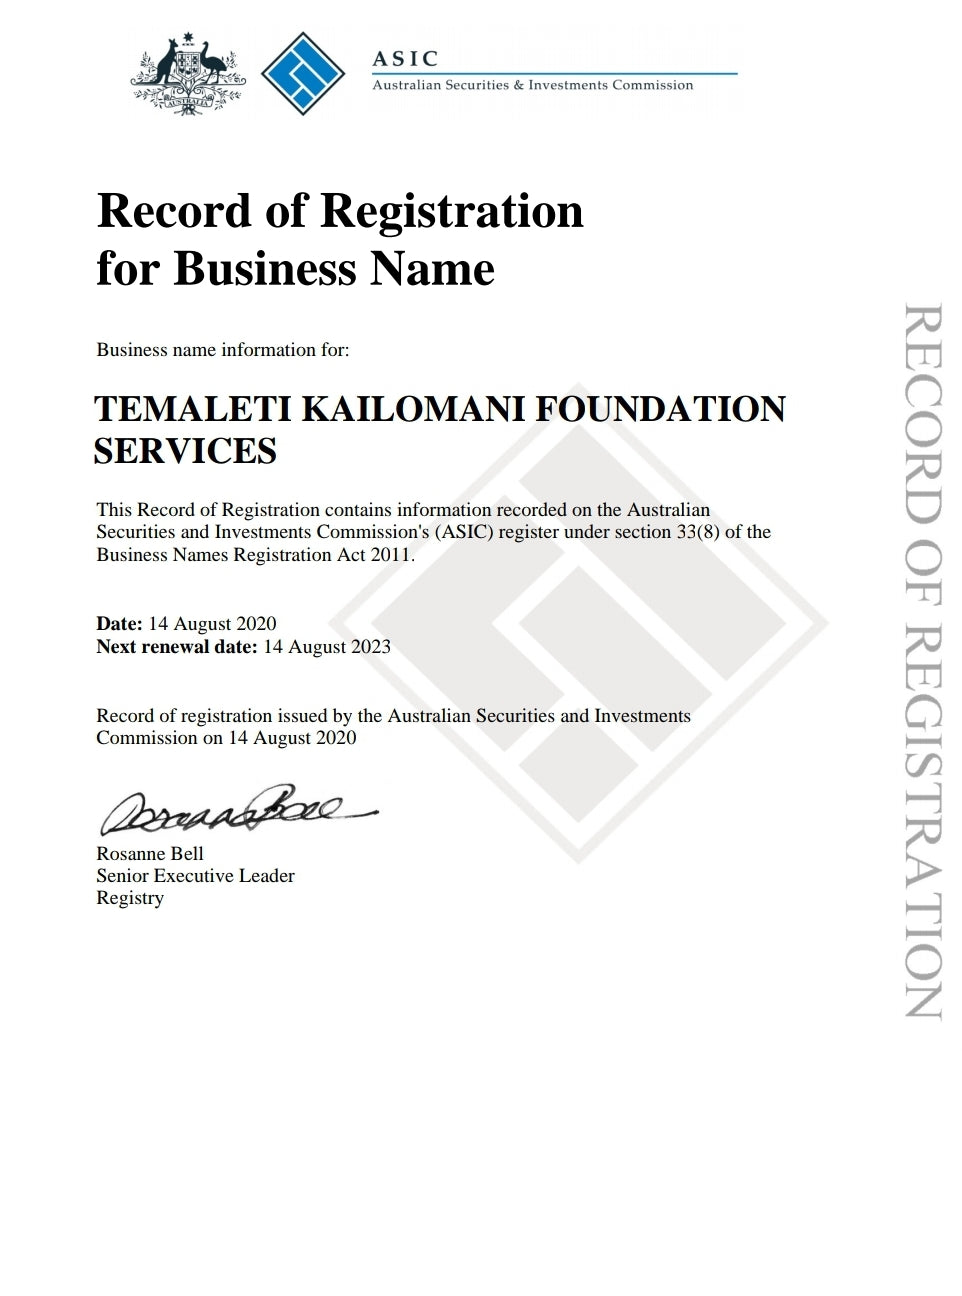 Our Business Registration